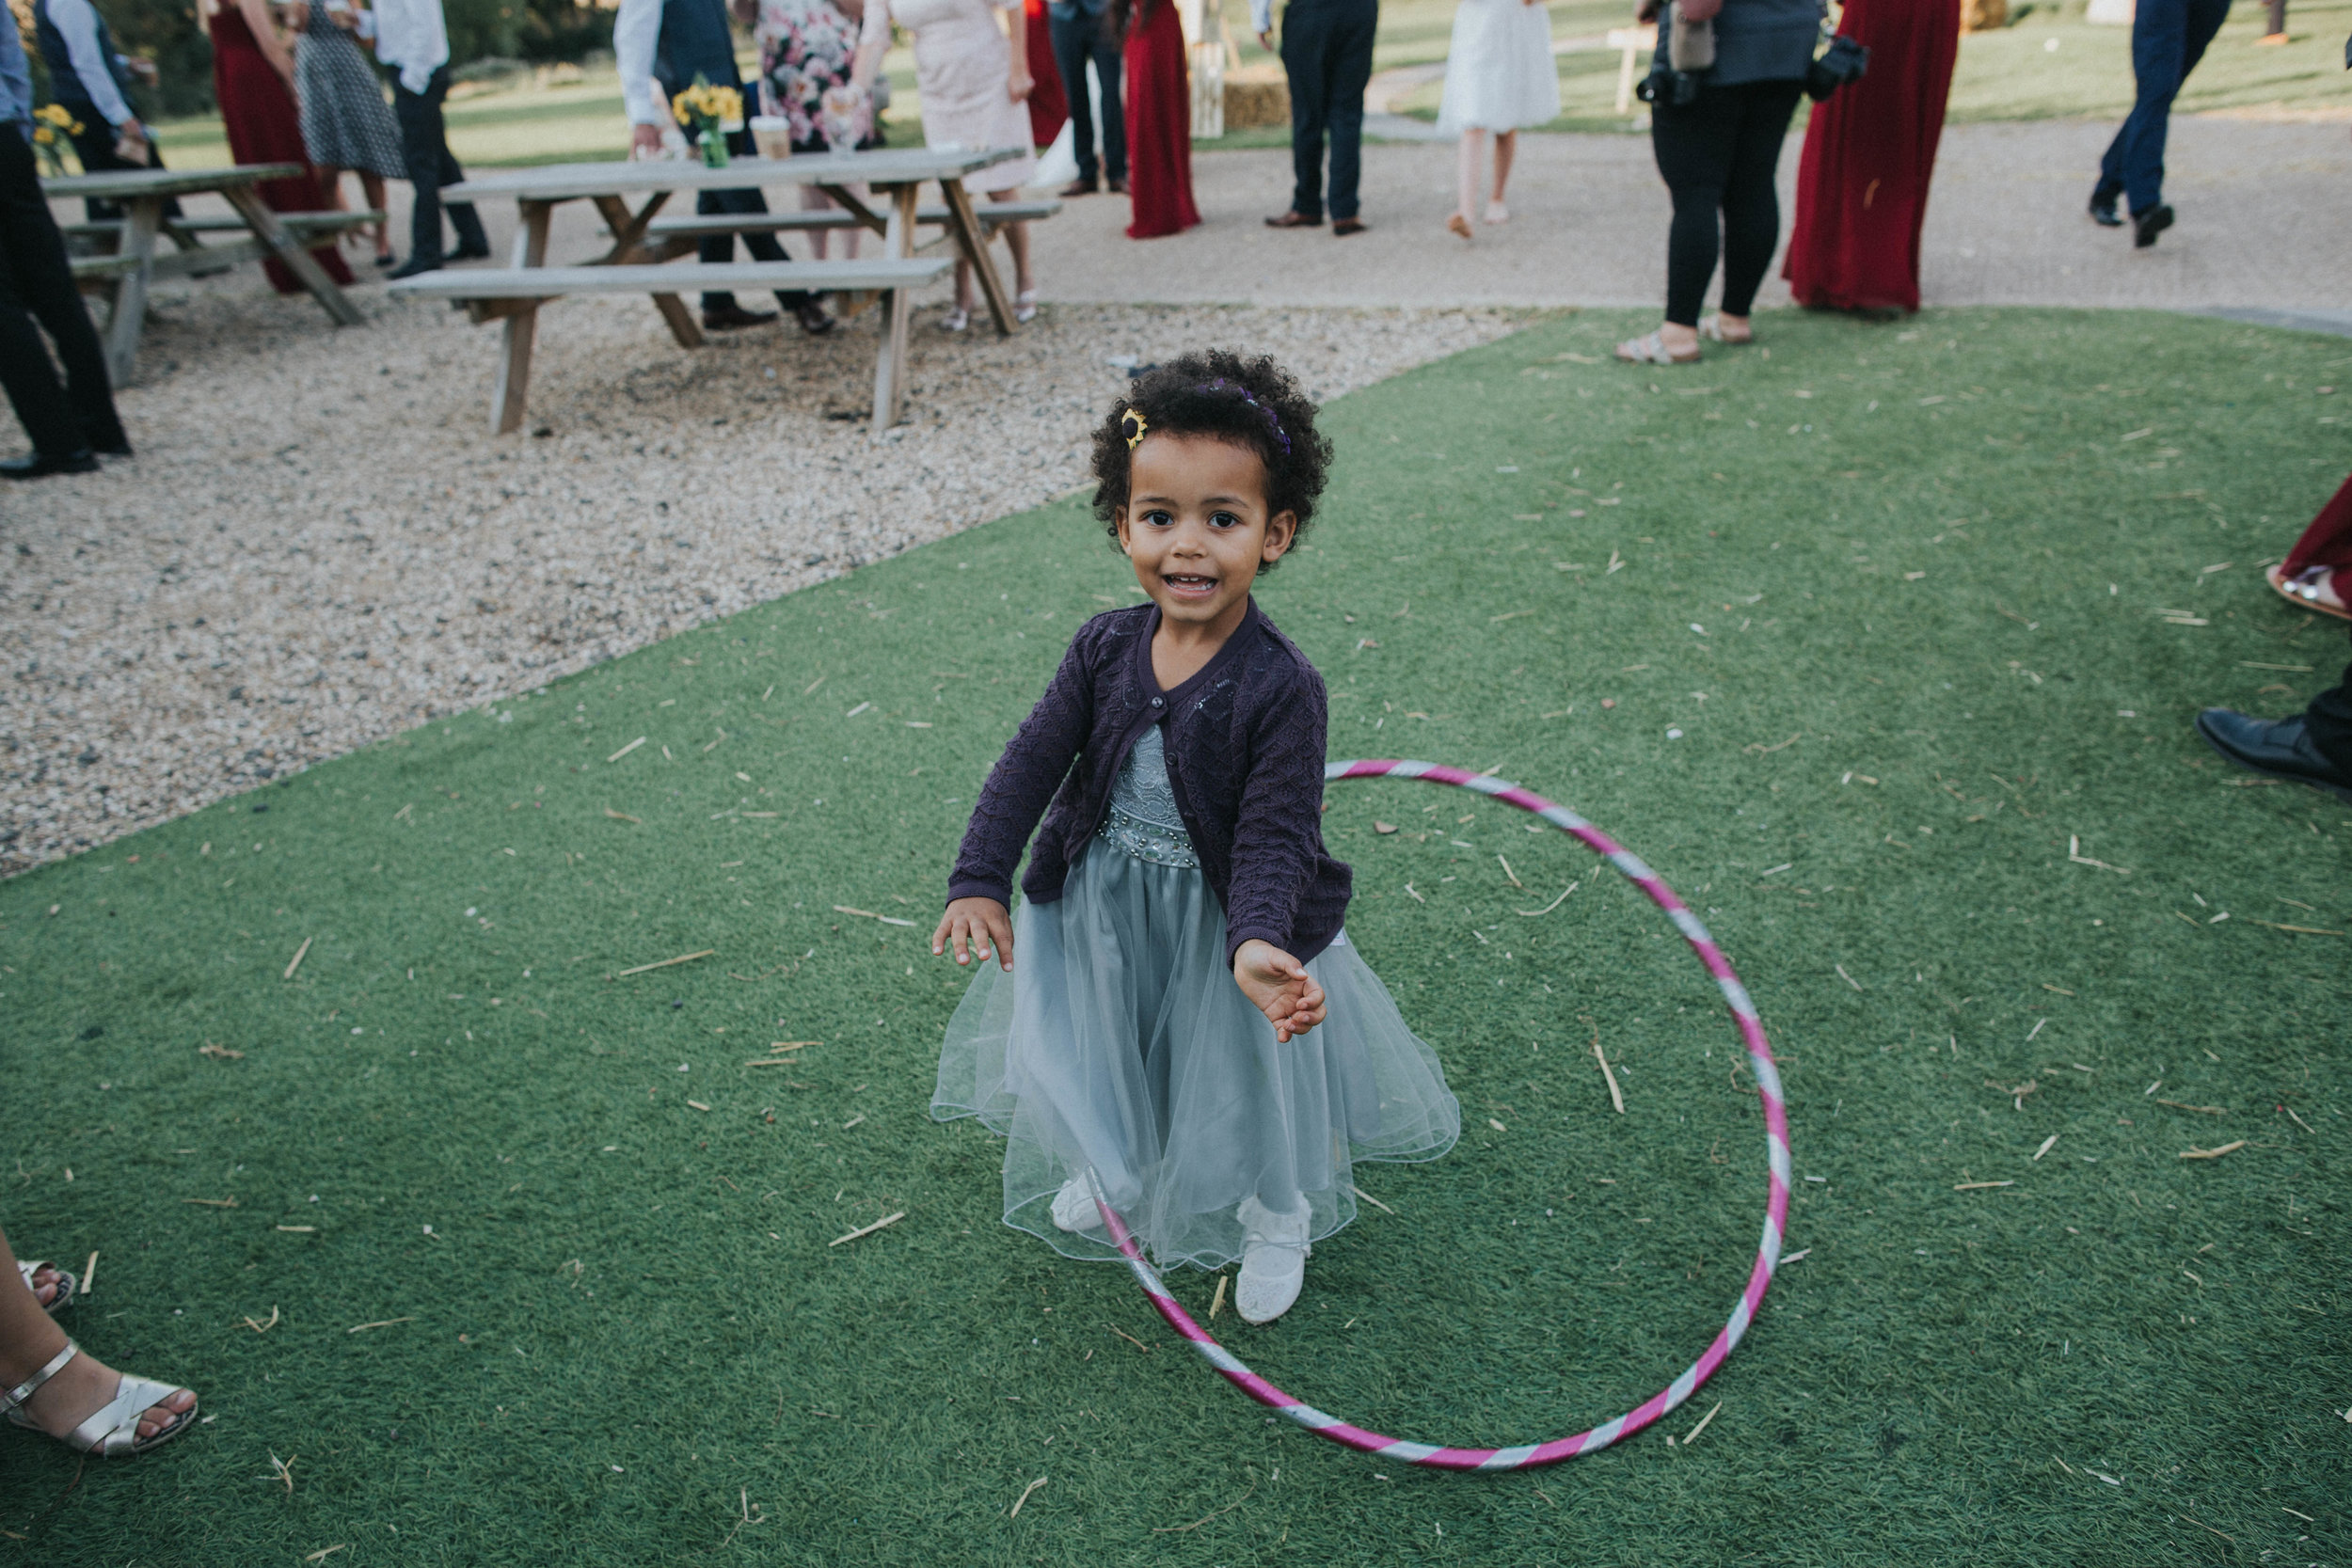 child photography at weddings, midlands